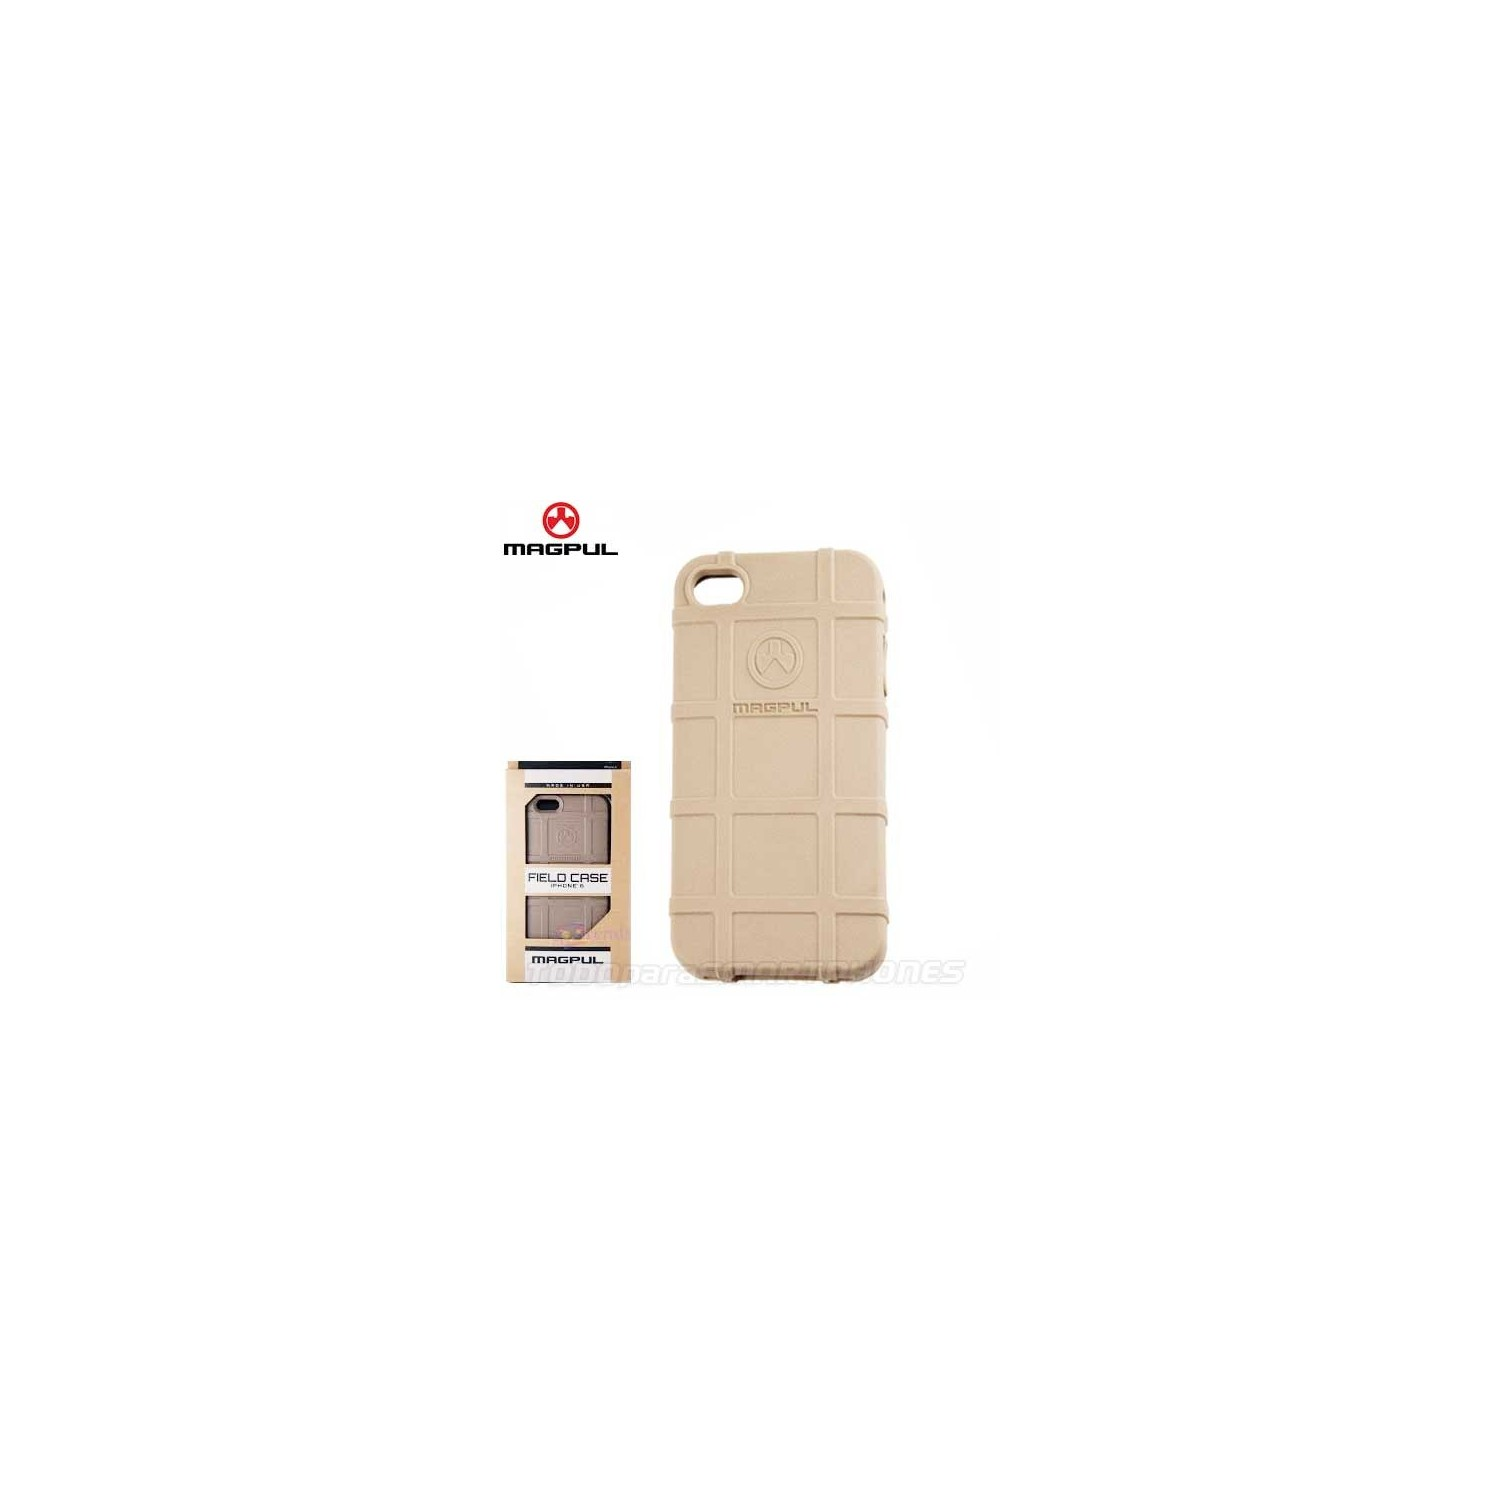 Funda MAGPUL Field case iPhone 6s/6 Arena